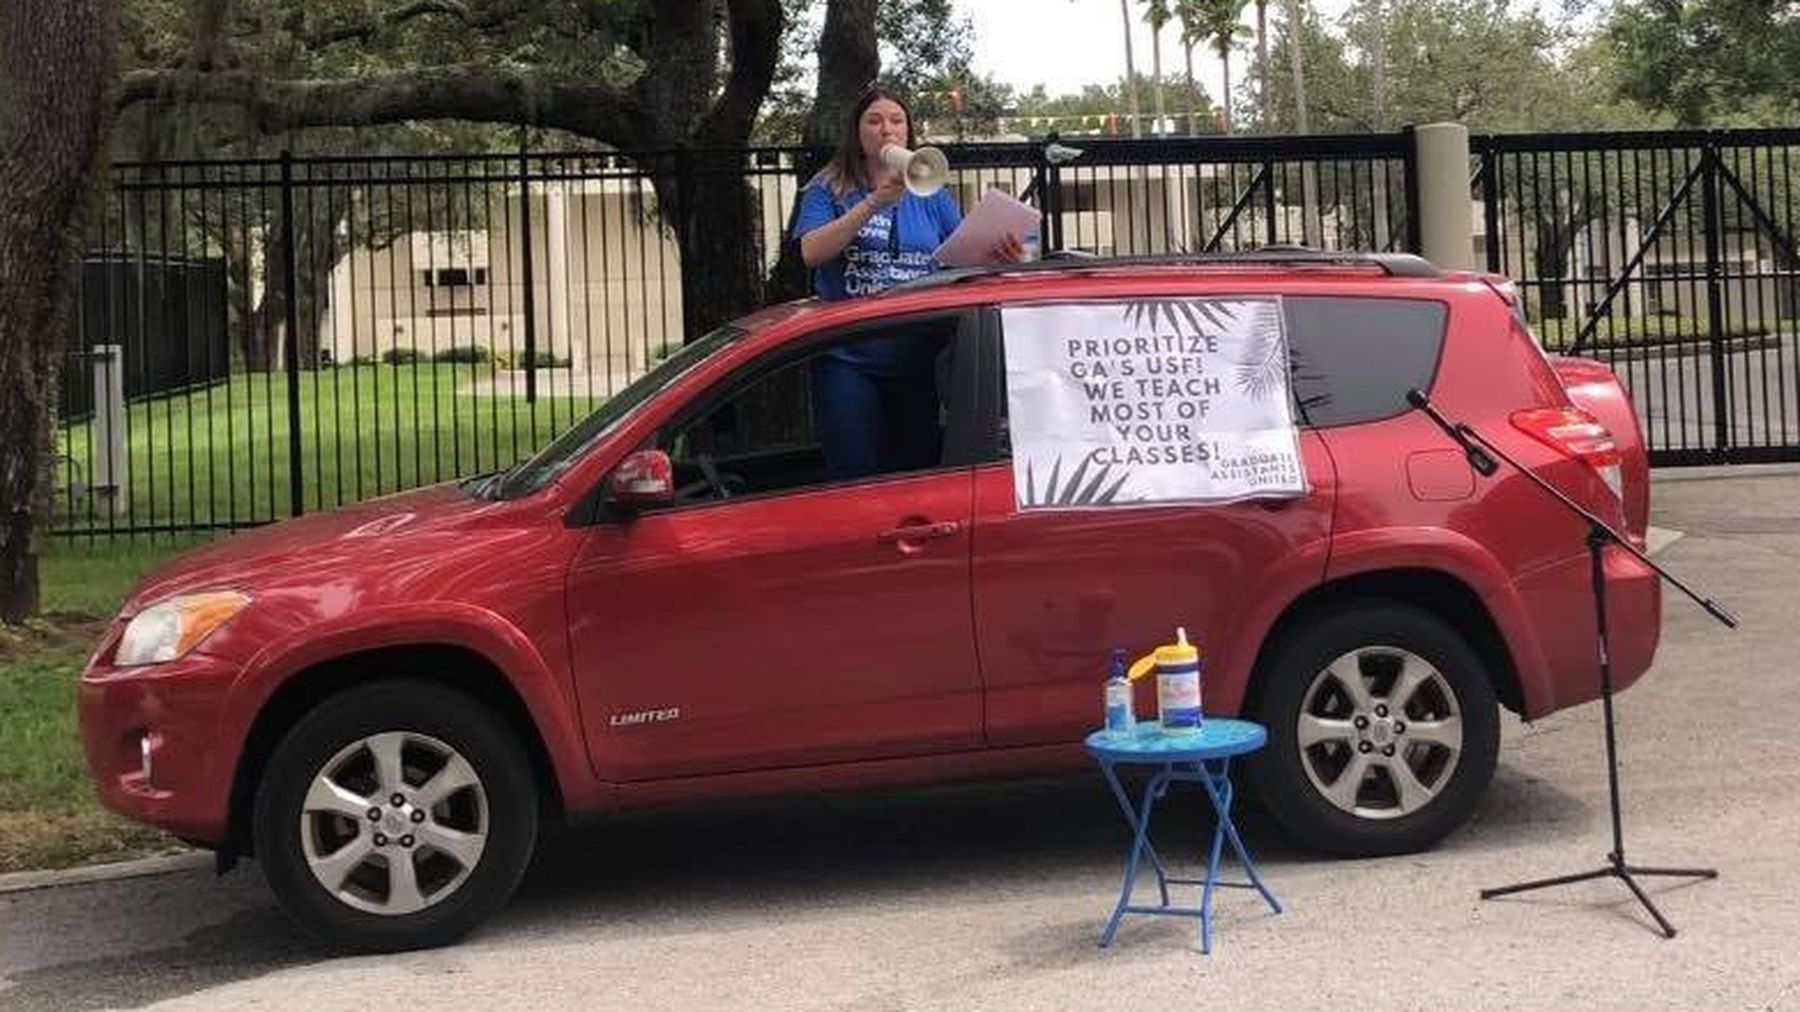 USF graduate students roll out a new kind of protest outside president's  house